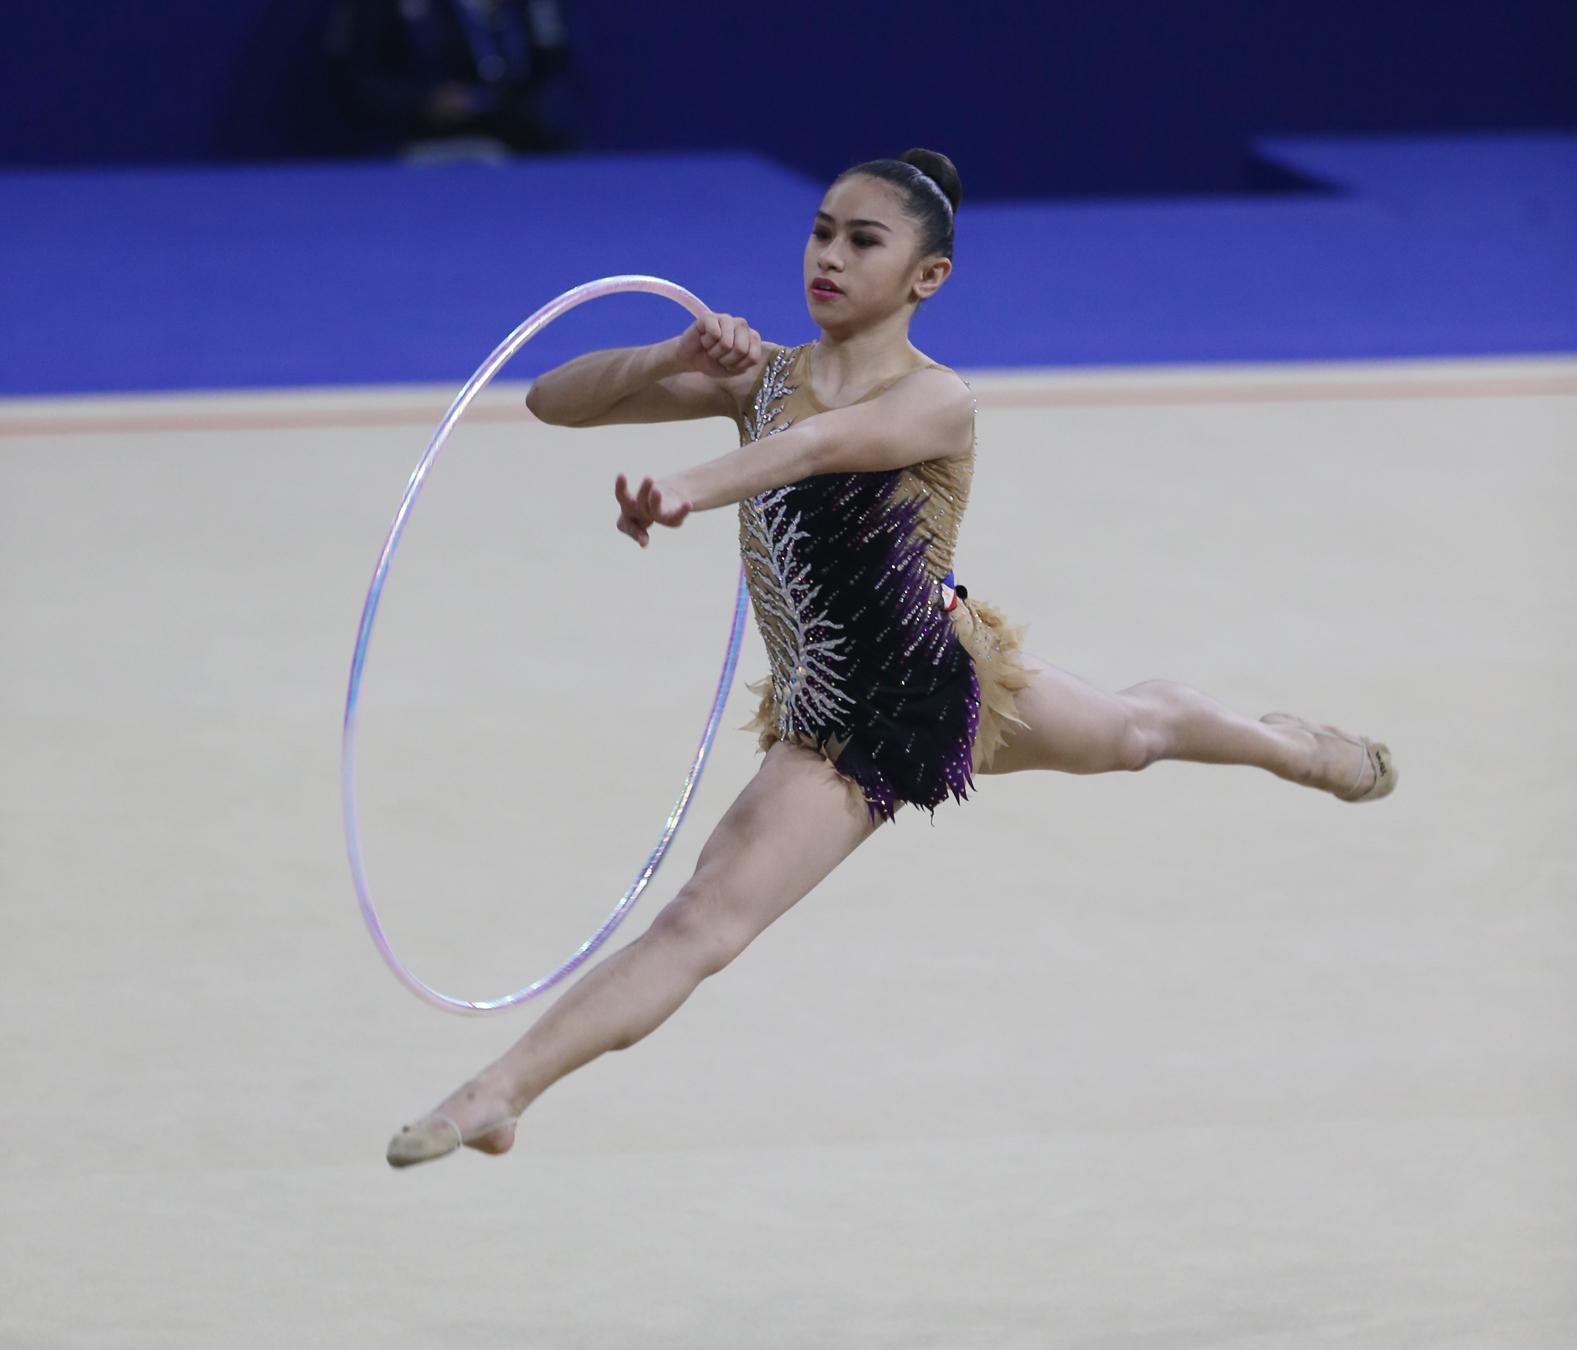 Daniela Dela Pisa Scores Phls First Gold In Rhythmic Gymnastics